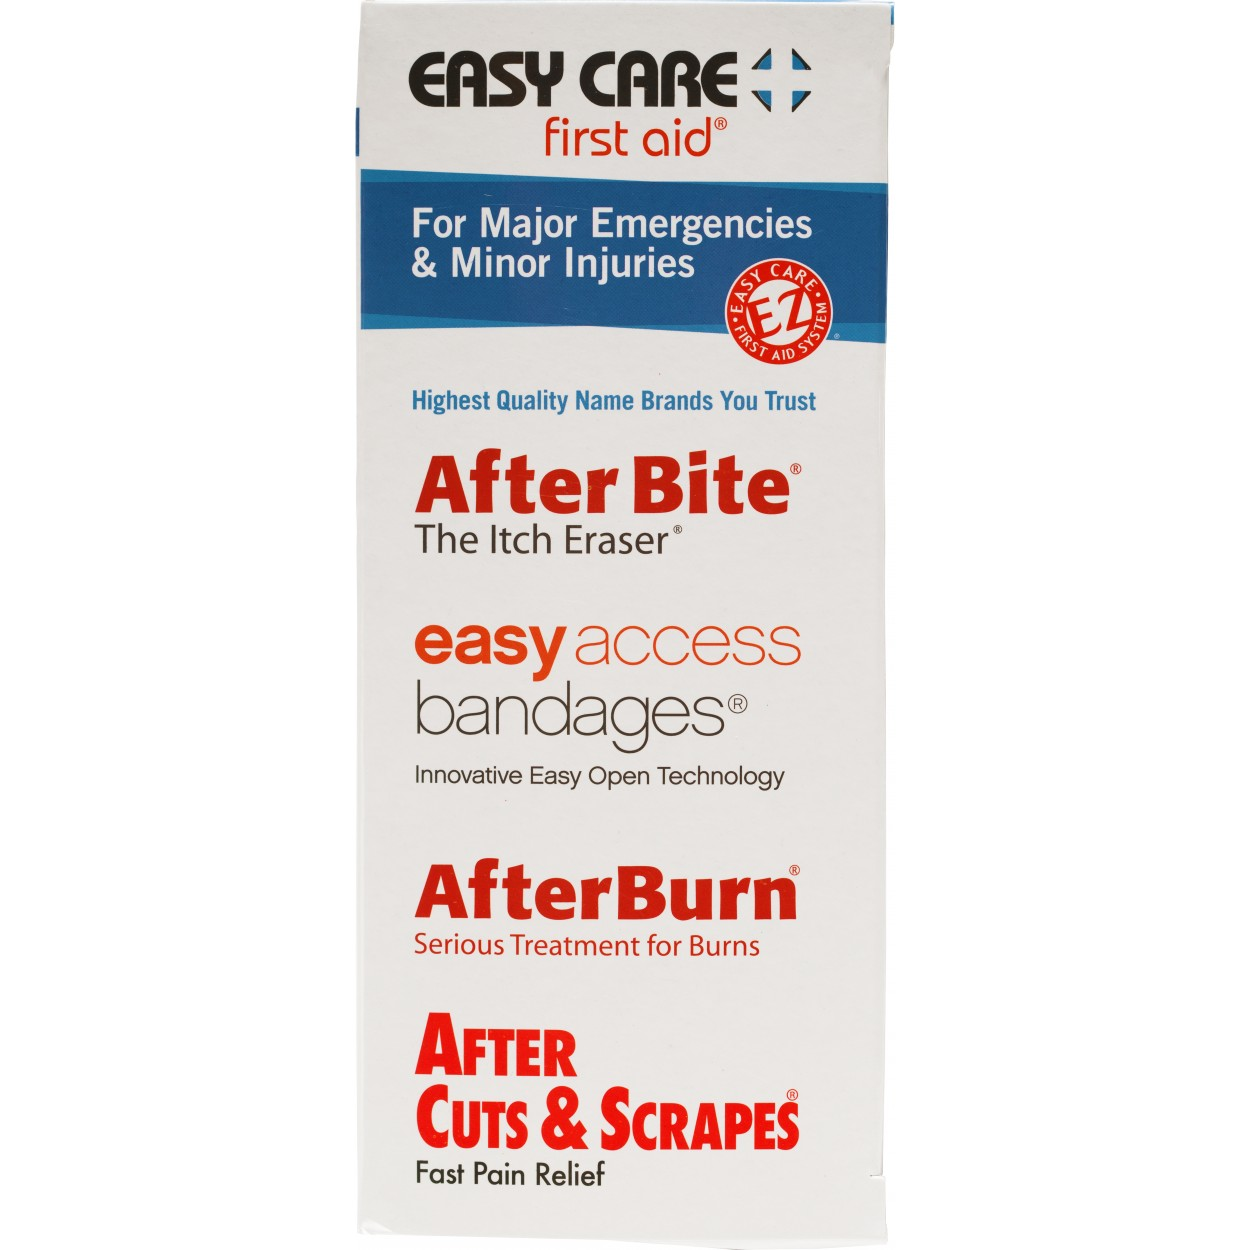 Easy Care Comprehensive Easy Care First Aid 174 Kits